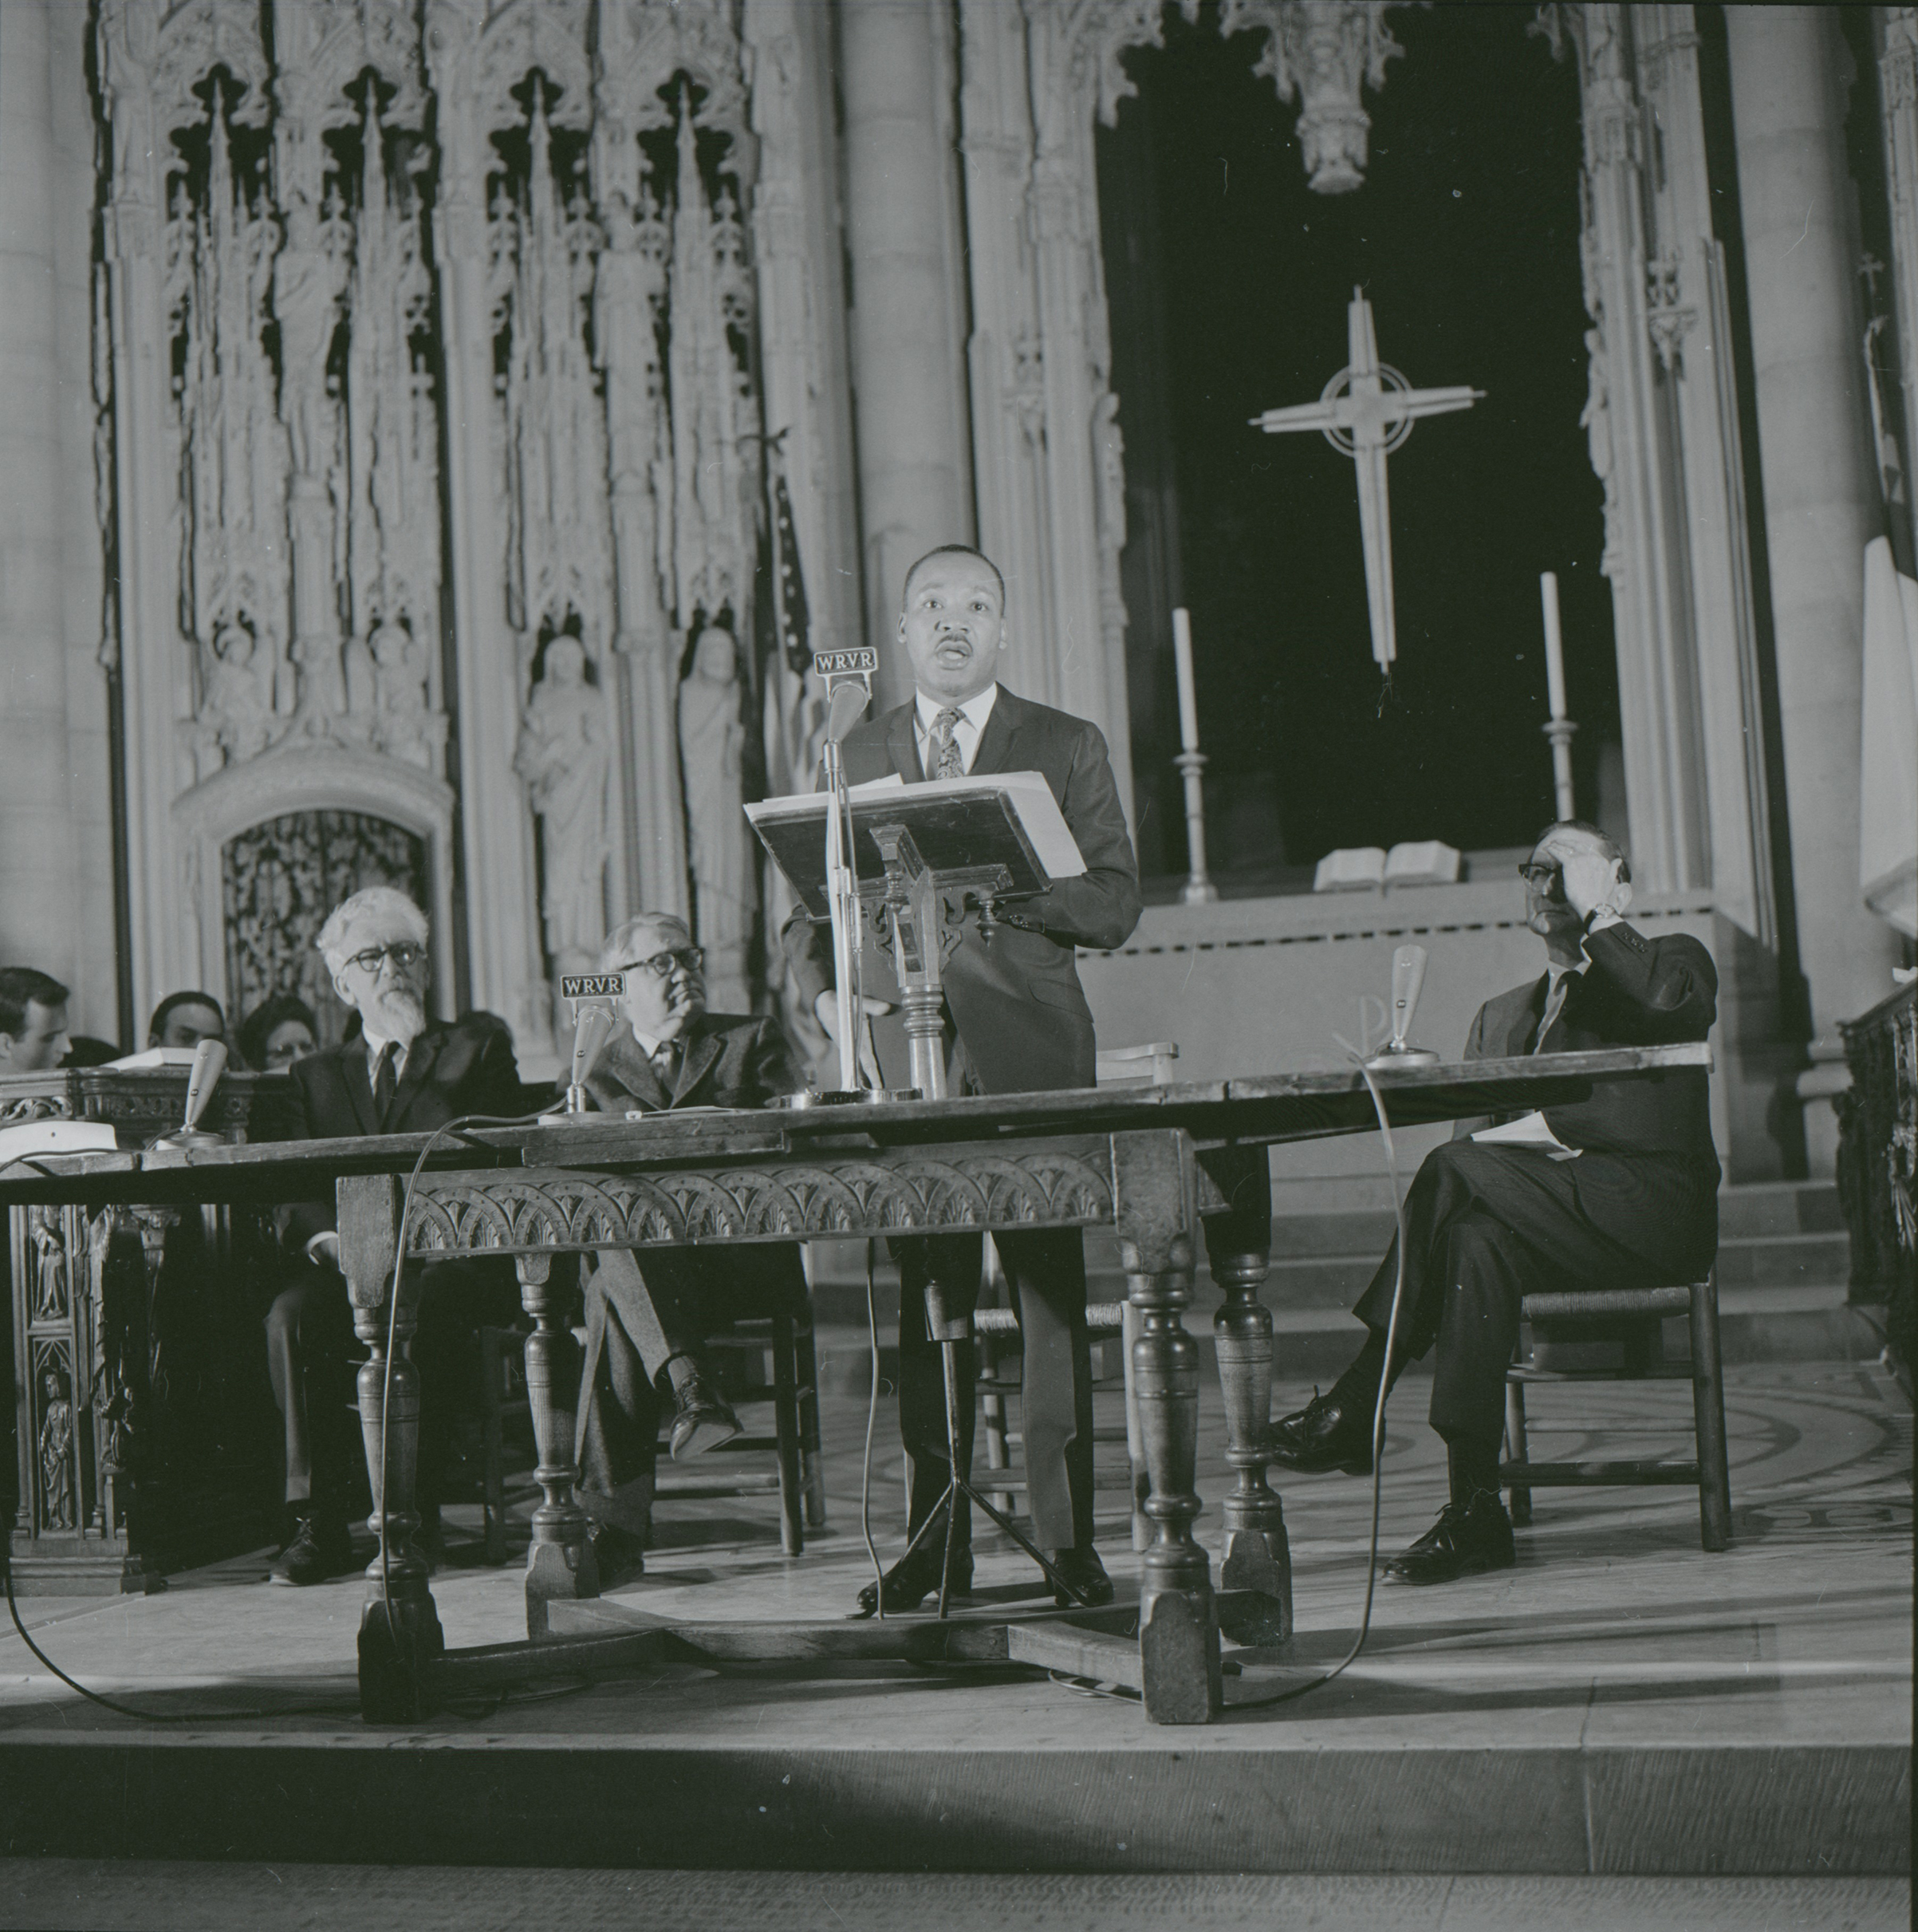 "King delivering his speech ""Beyond Vietnam"" at New York City's Riverside Church in 1967"